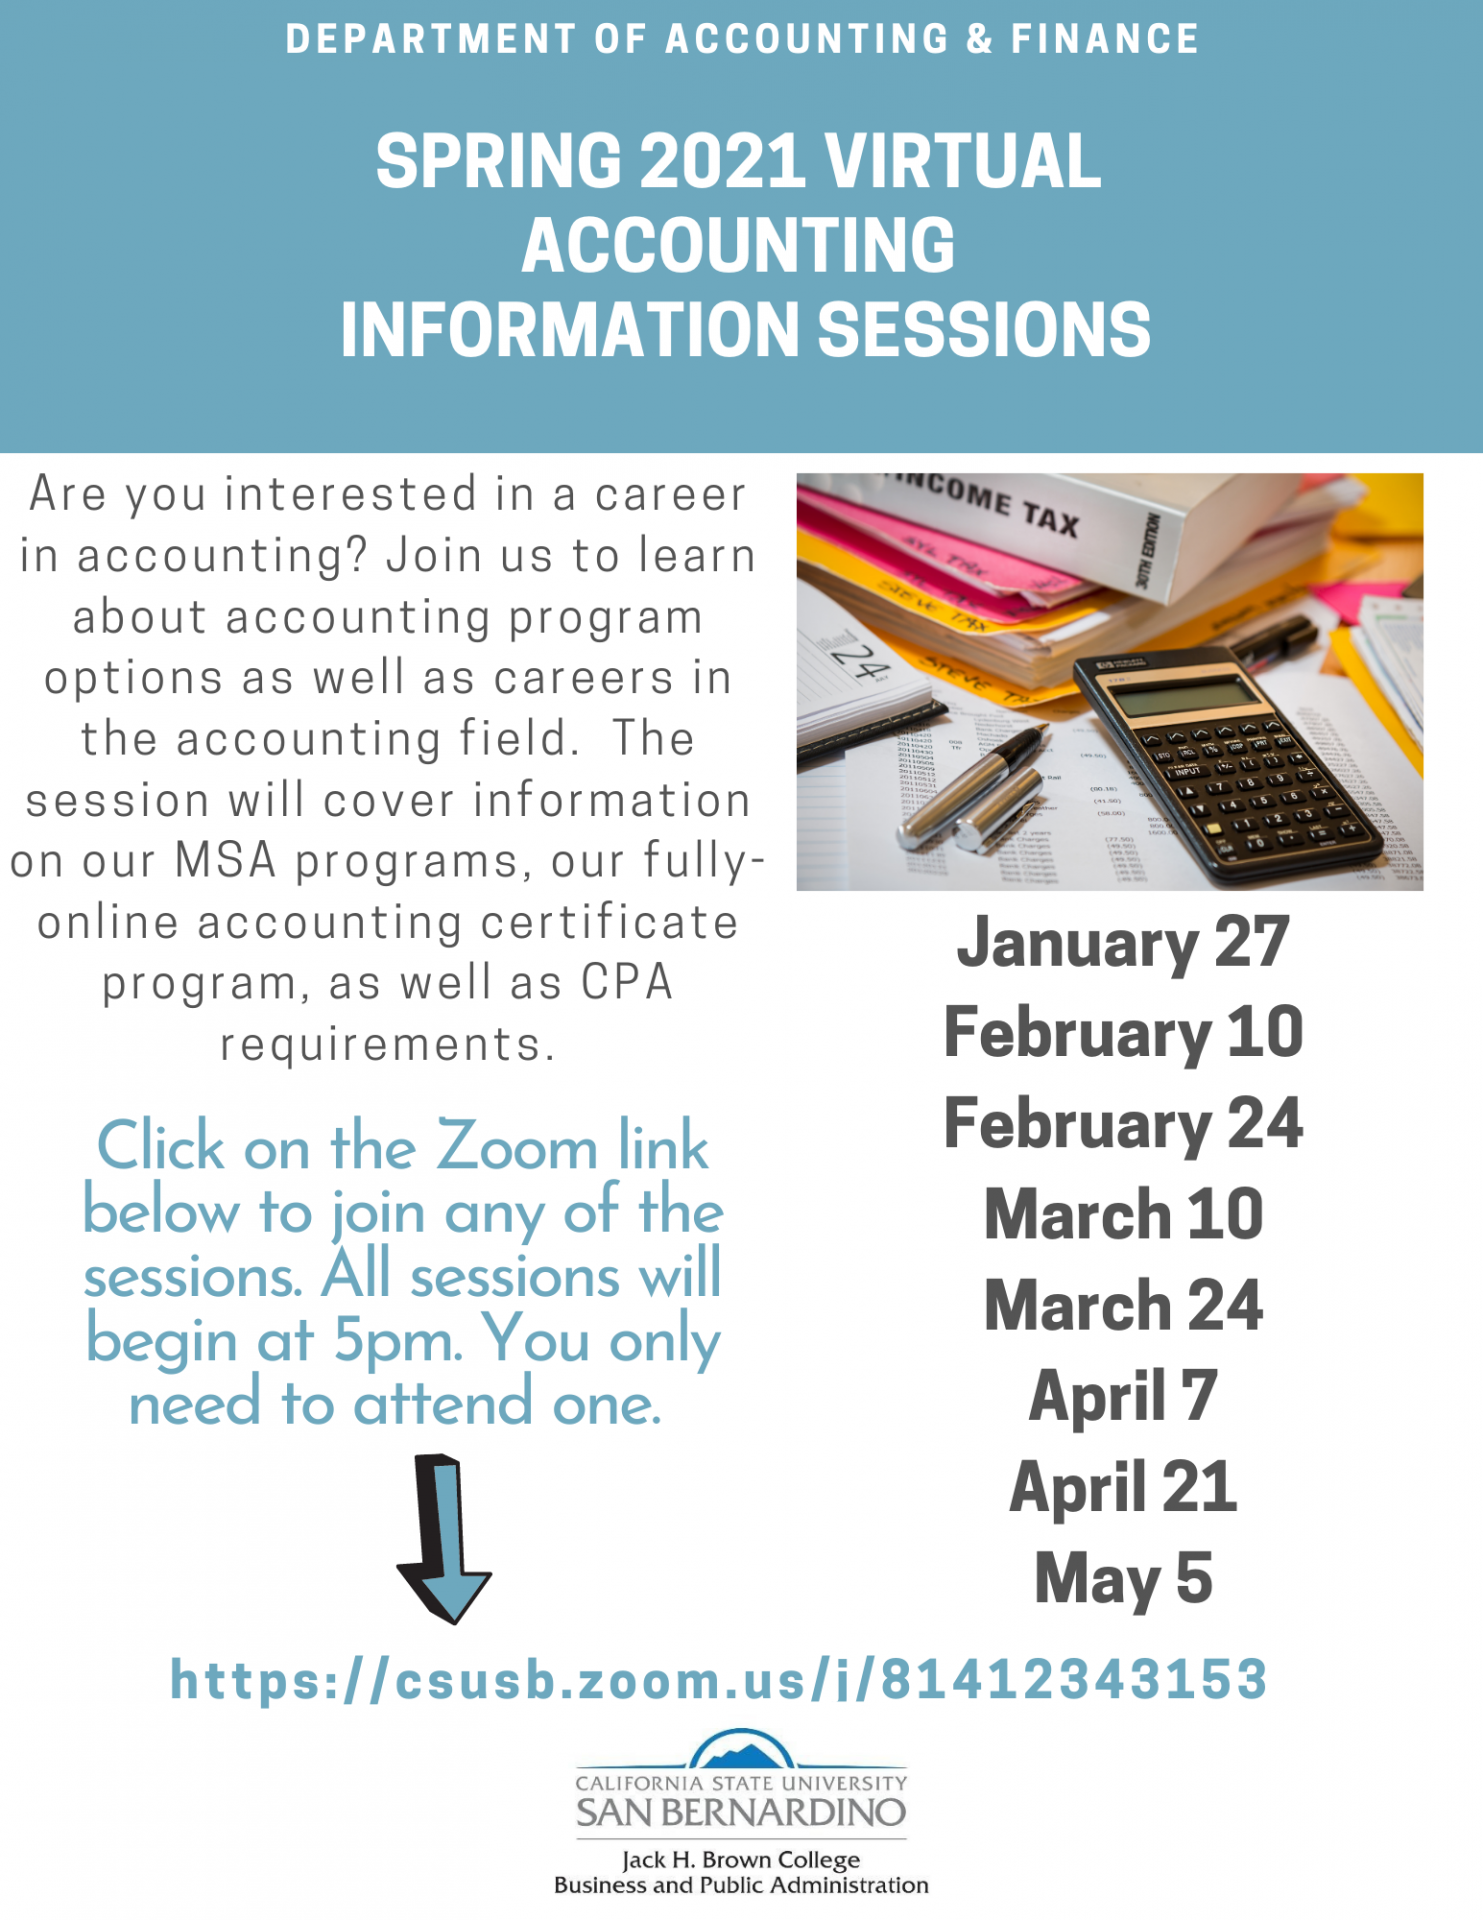 information session flyer with dates